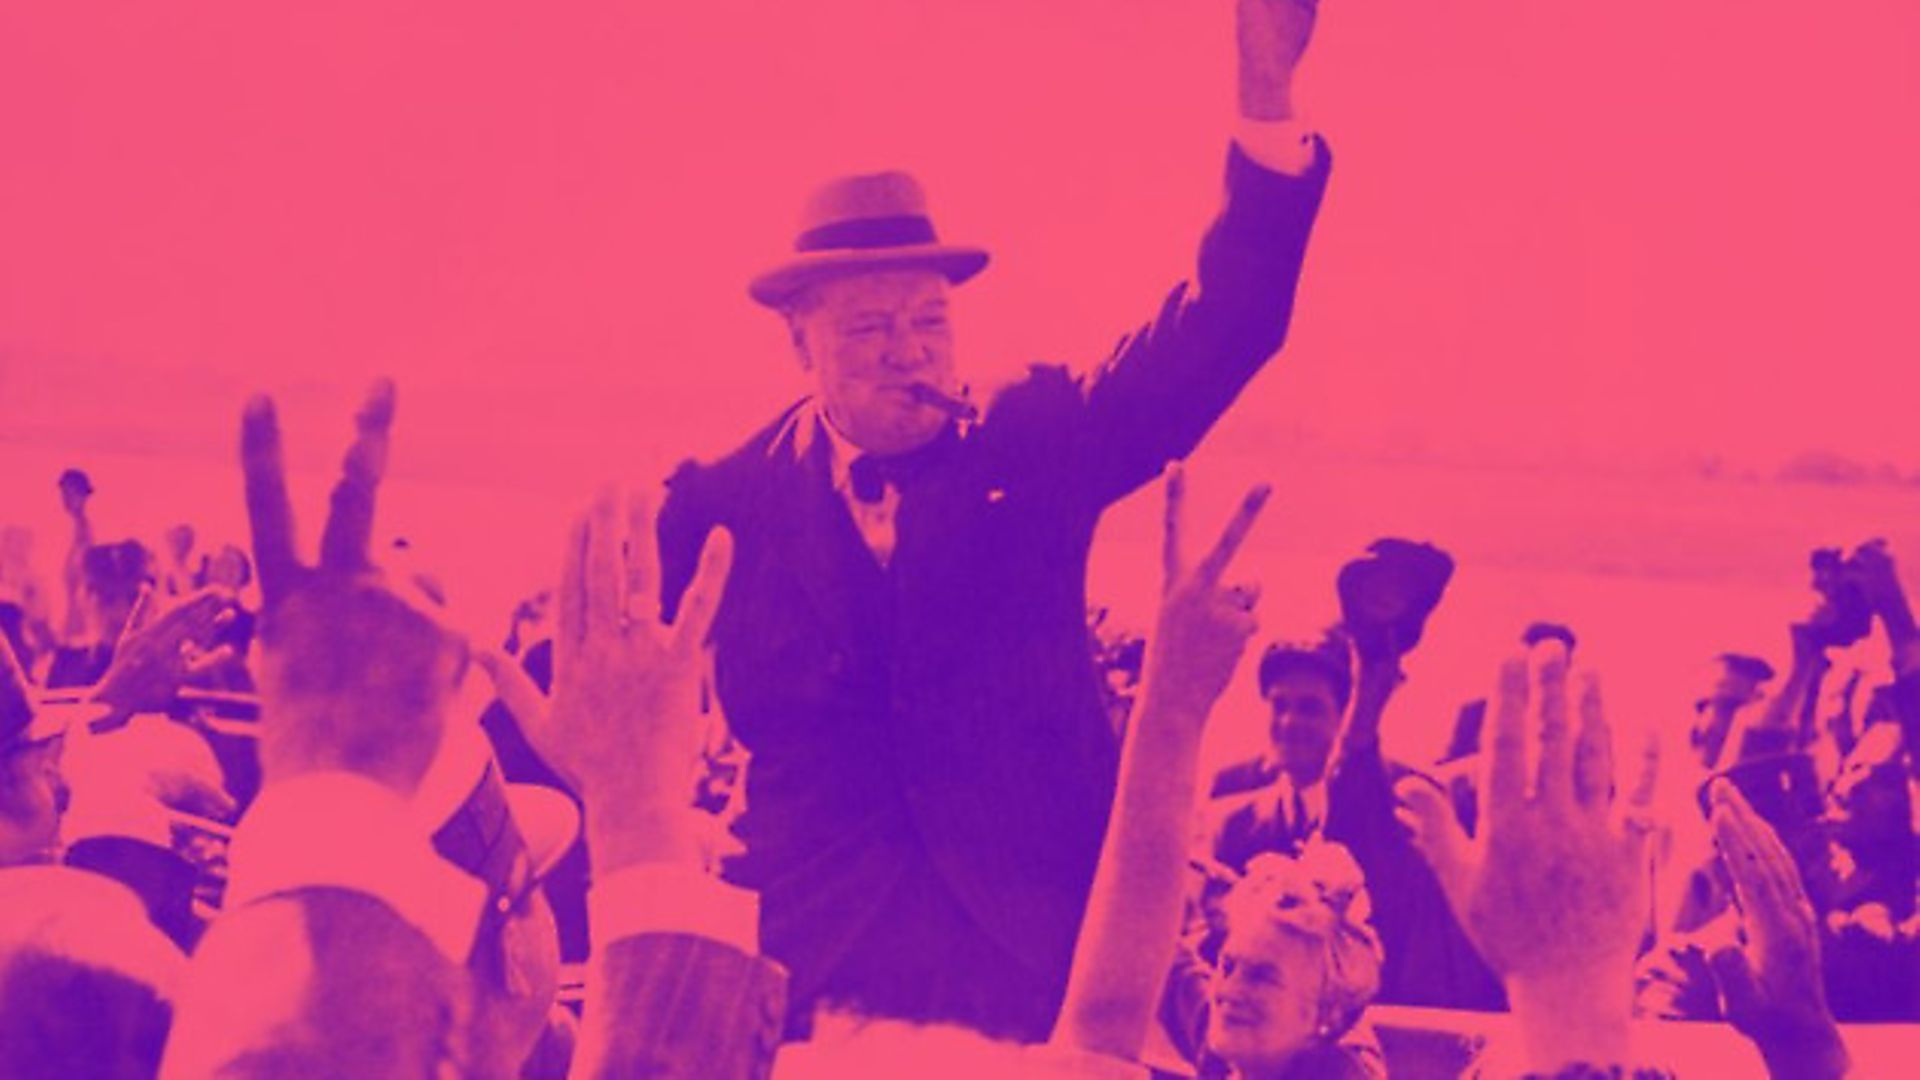 Sir Winston Churchill makes the Victory Sign - Credit: Archant